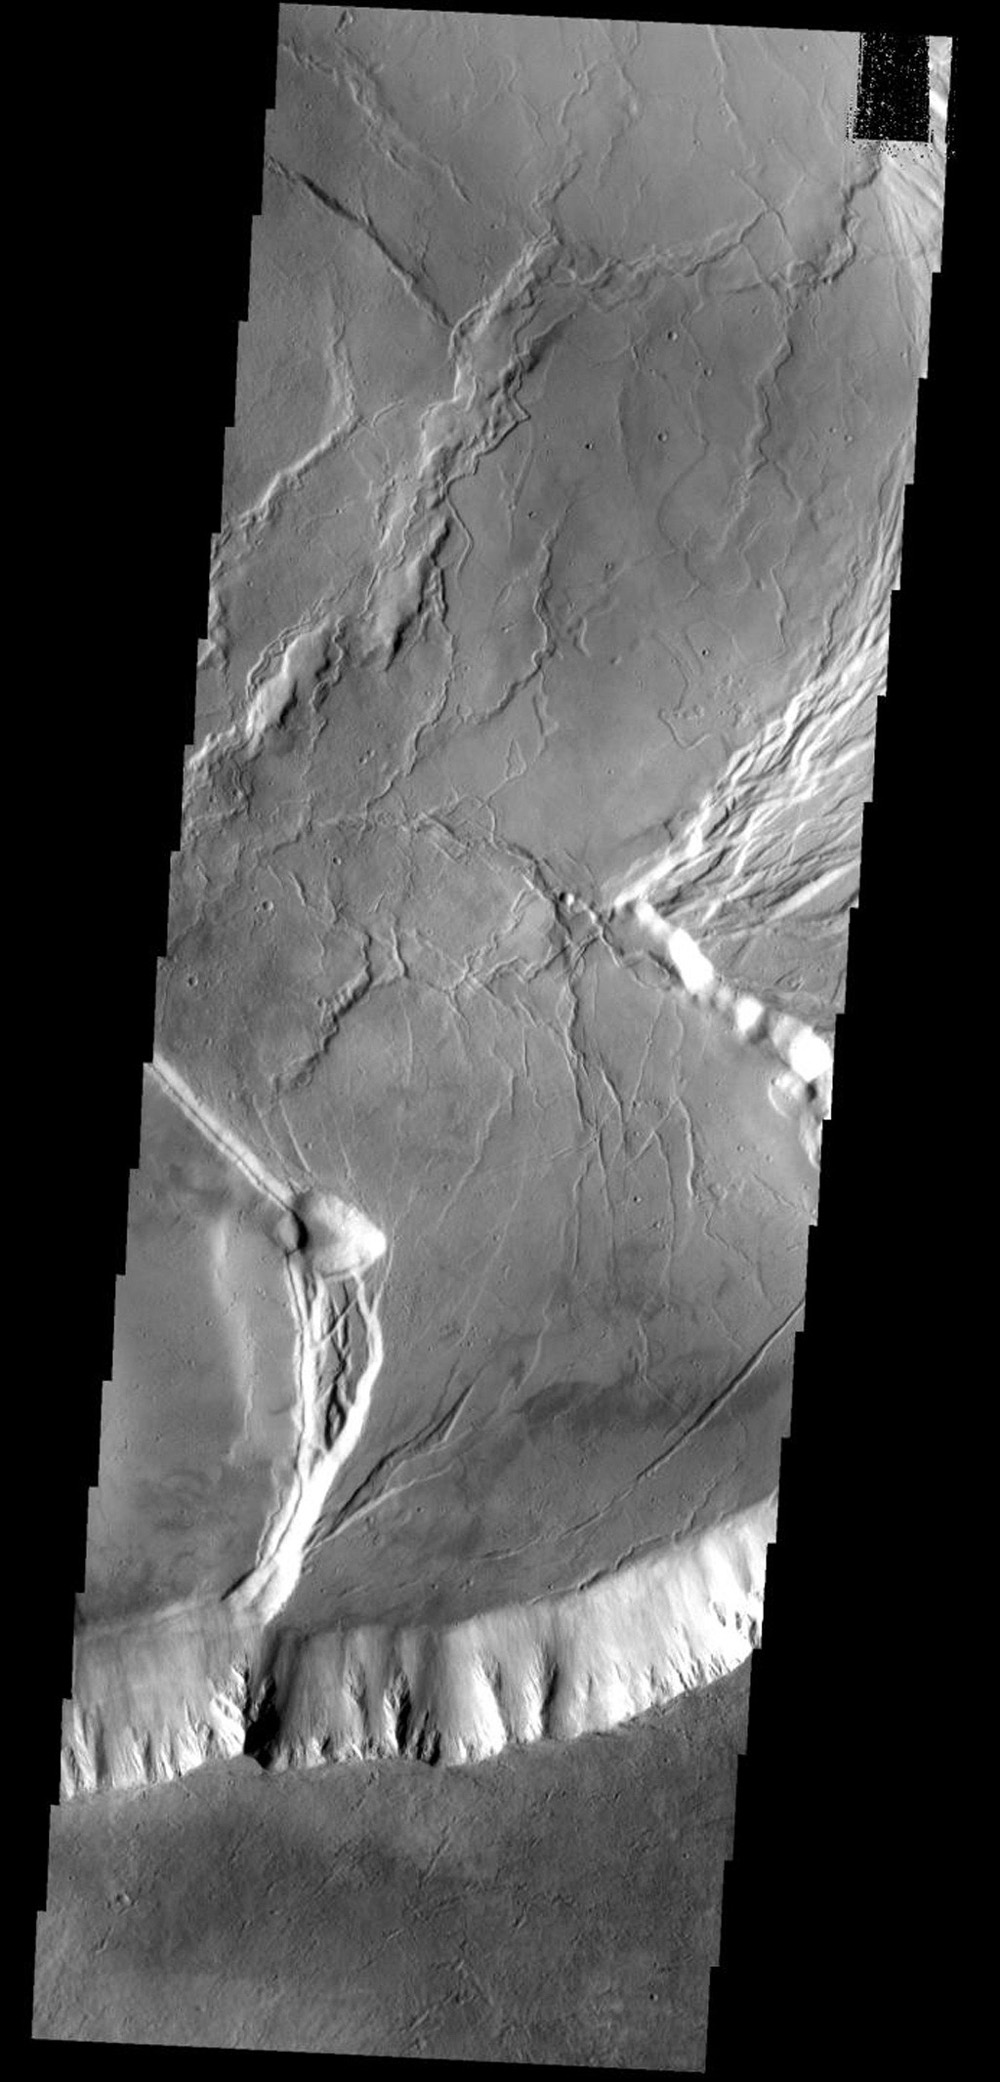 This image shows a portion of the summit caldera of Olympus Mons on Mars as seen by NASA's Mars Odyssey spacecraft.